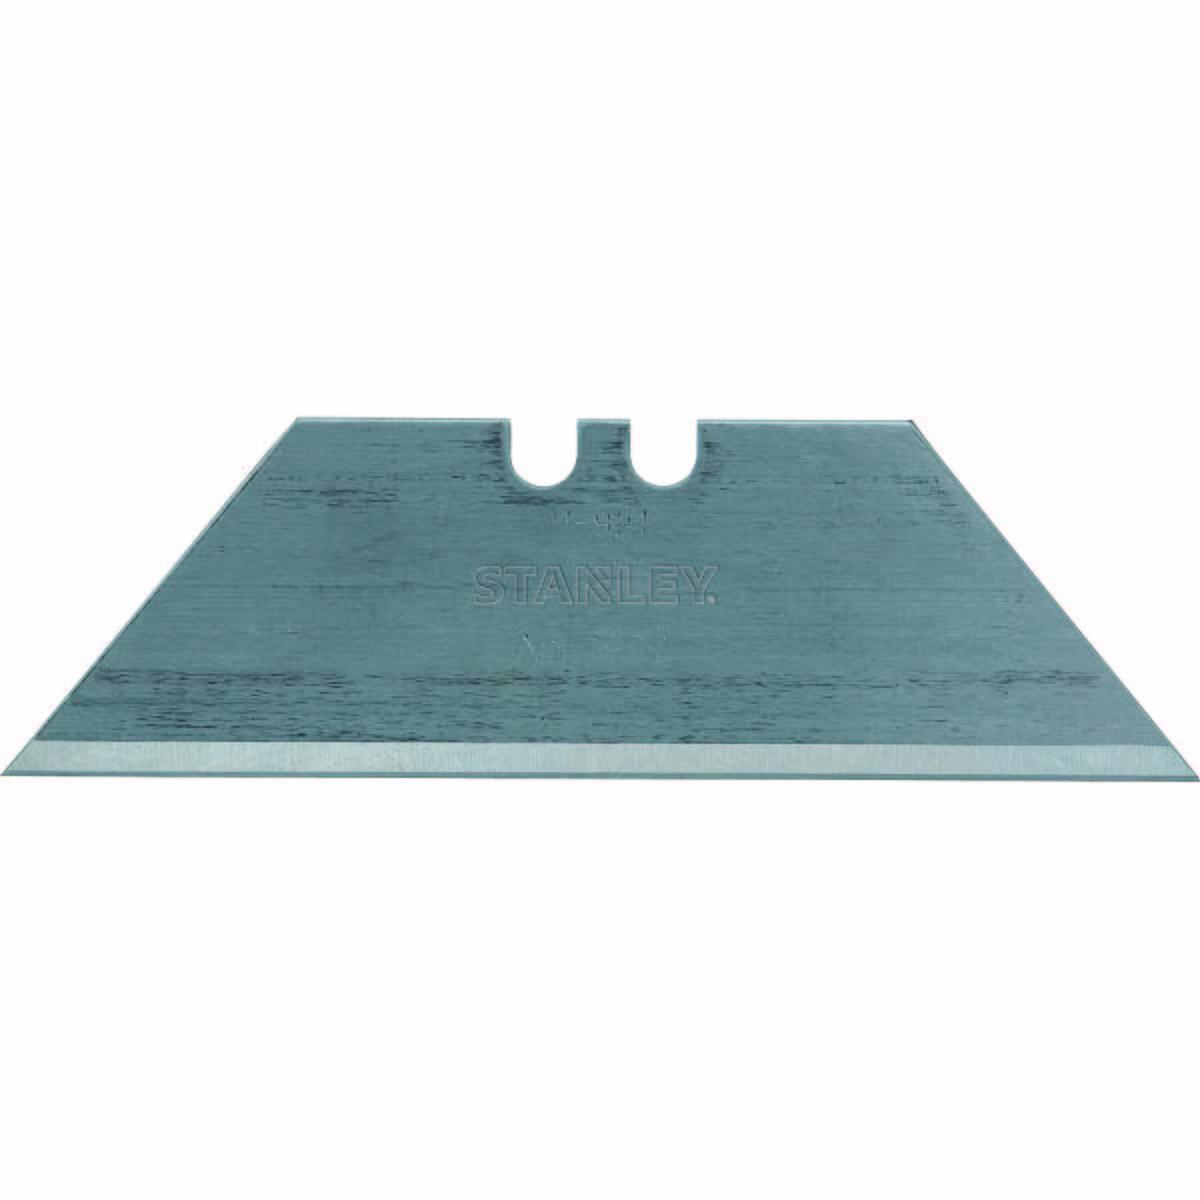 STANLEY HEAVY DUTY UTILITY BLADES - 5 PACK